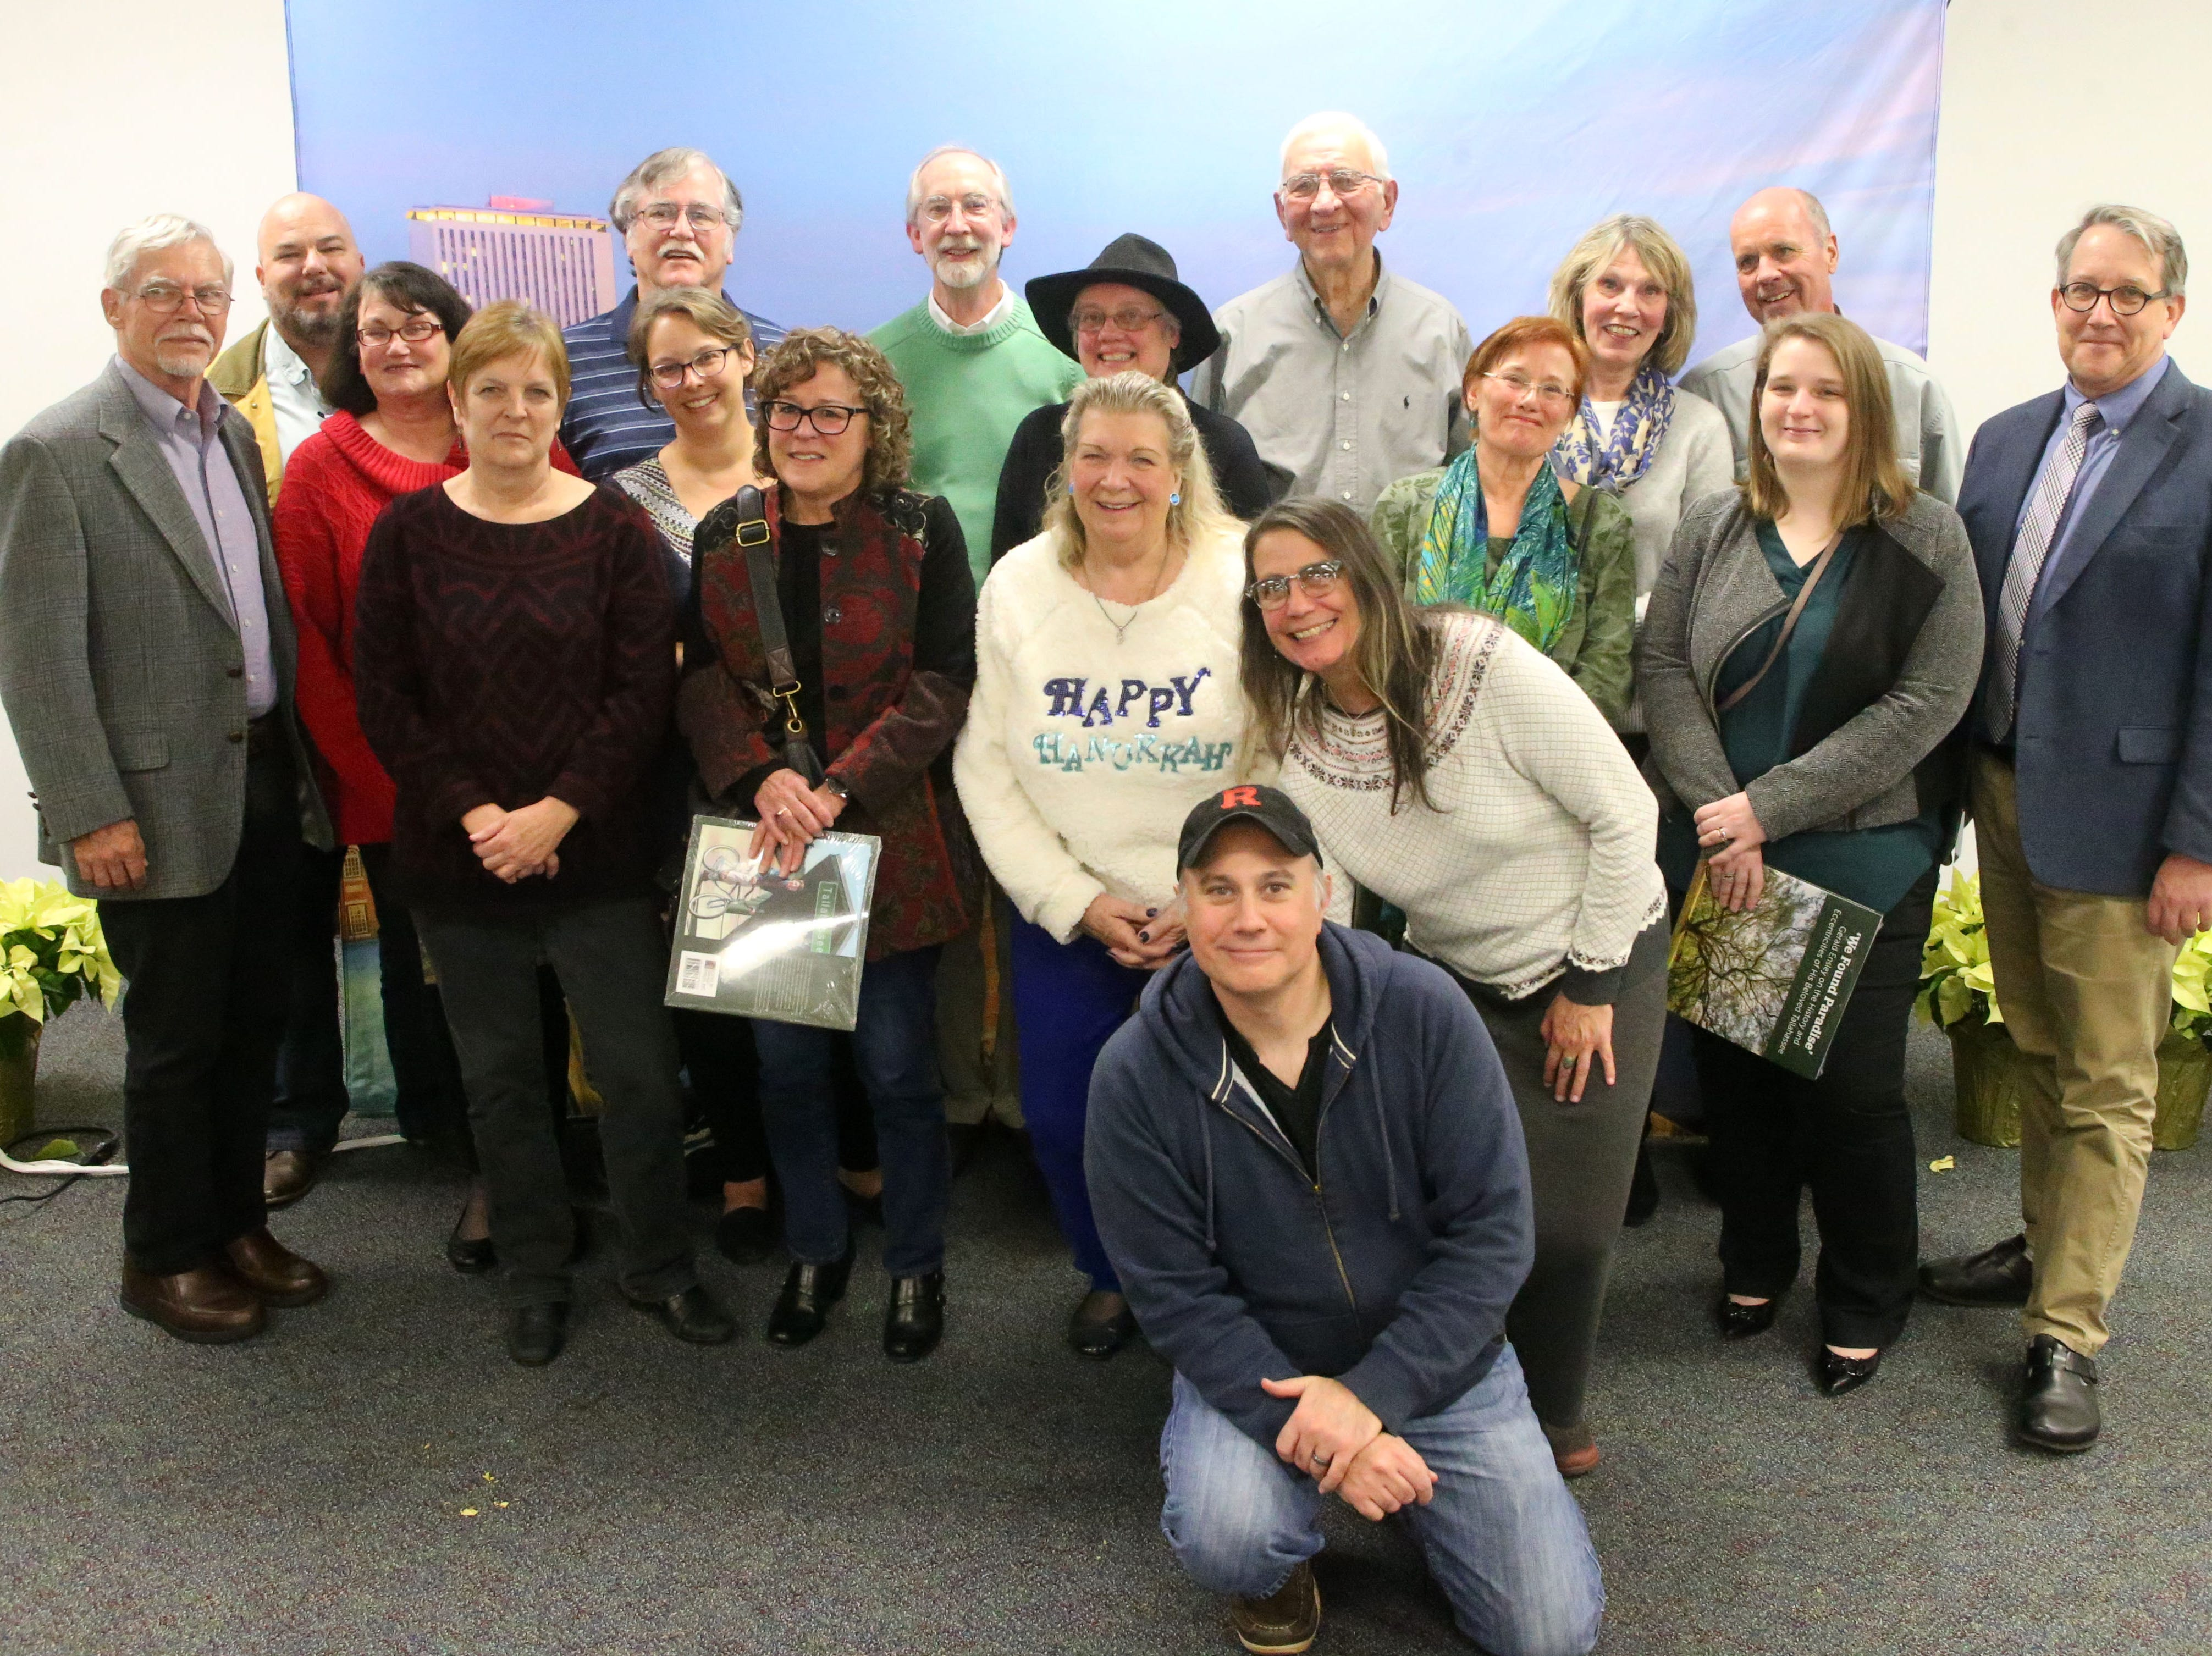 Tallahassee Democrat alumni pose for a photograph at a launch party held at the Tallahassee Democrat for Gerald Ensley's book, 'We Found Paradise,' Thursday, Dec. 6, 2018.